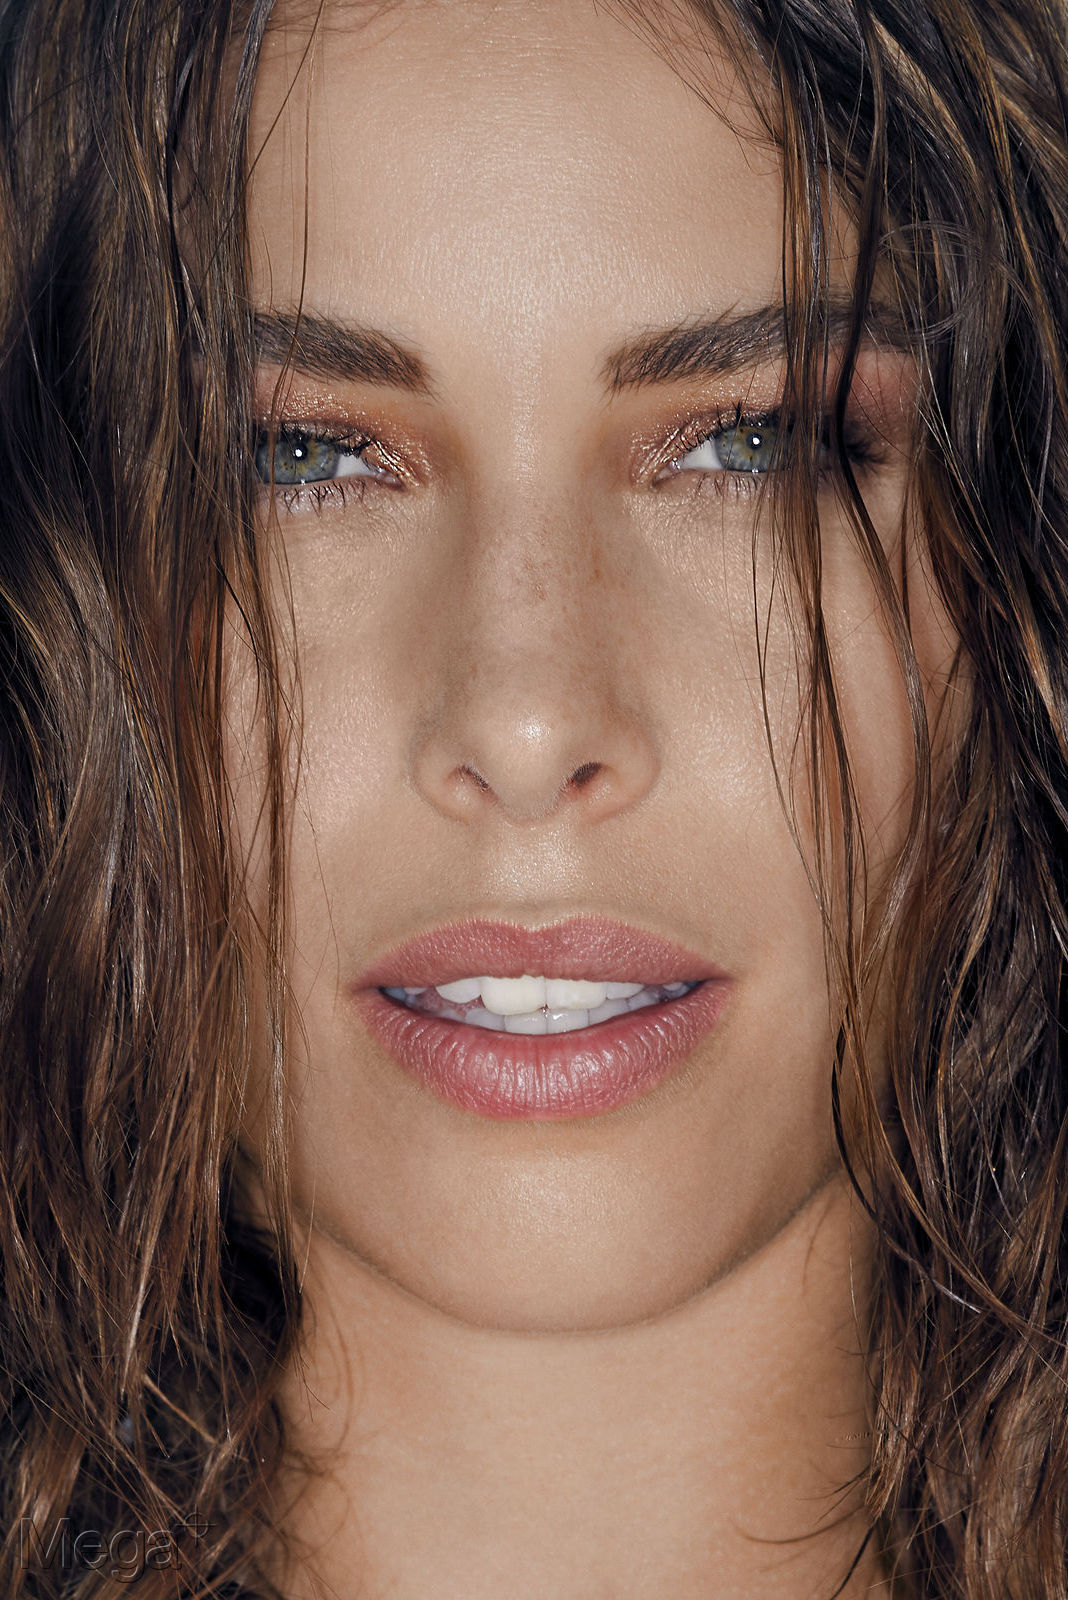 Leonie Bentzinger - Mega Model Agency